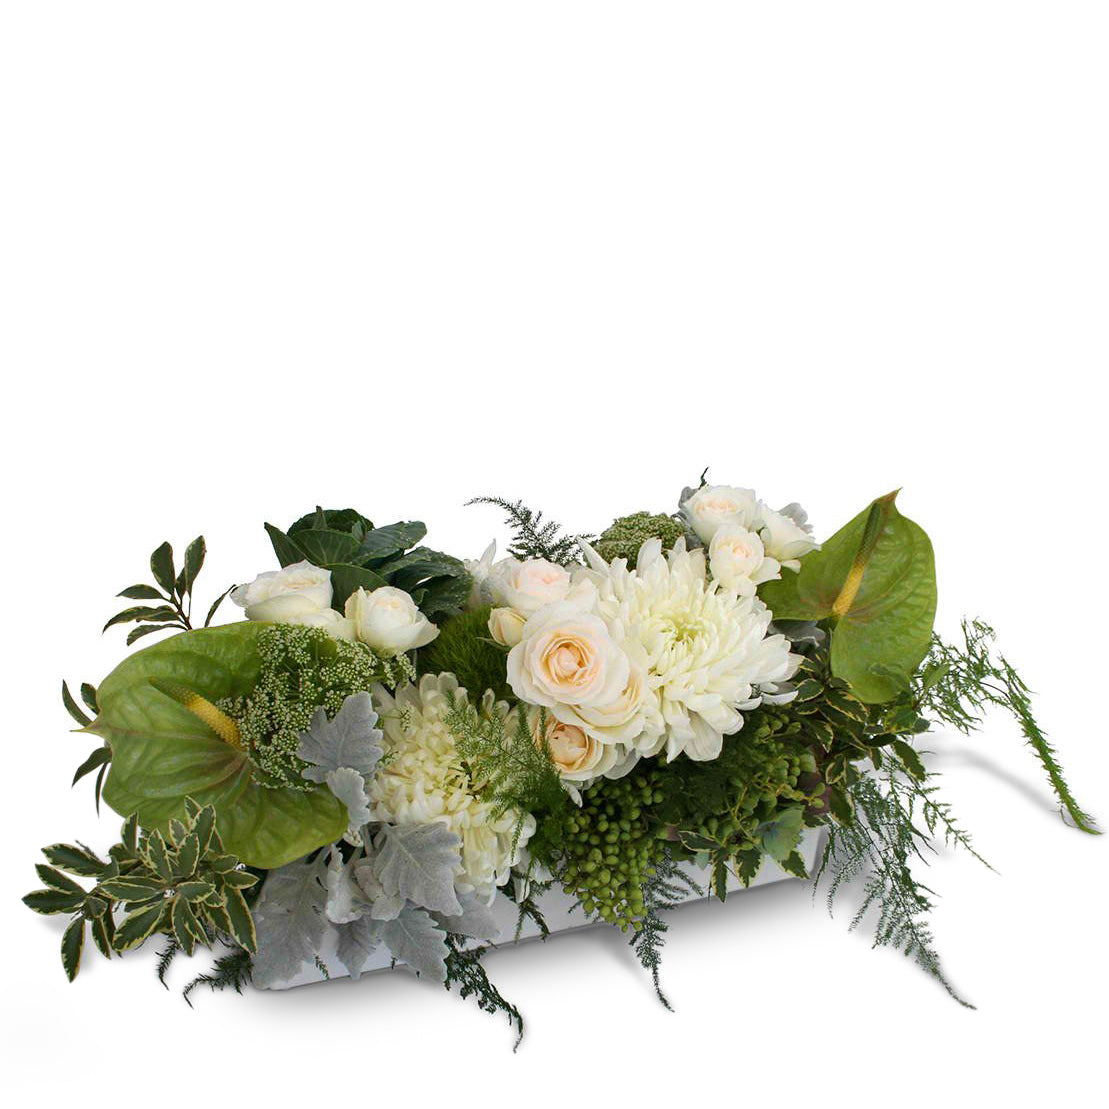 Seasonal Flowers in white designed into a ceramic vase in a long and low style.